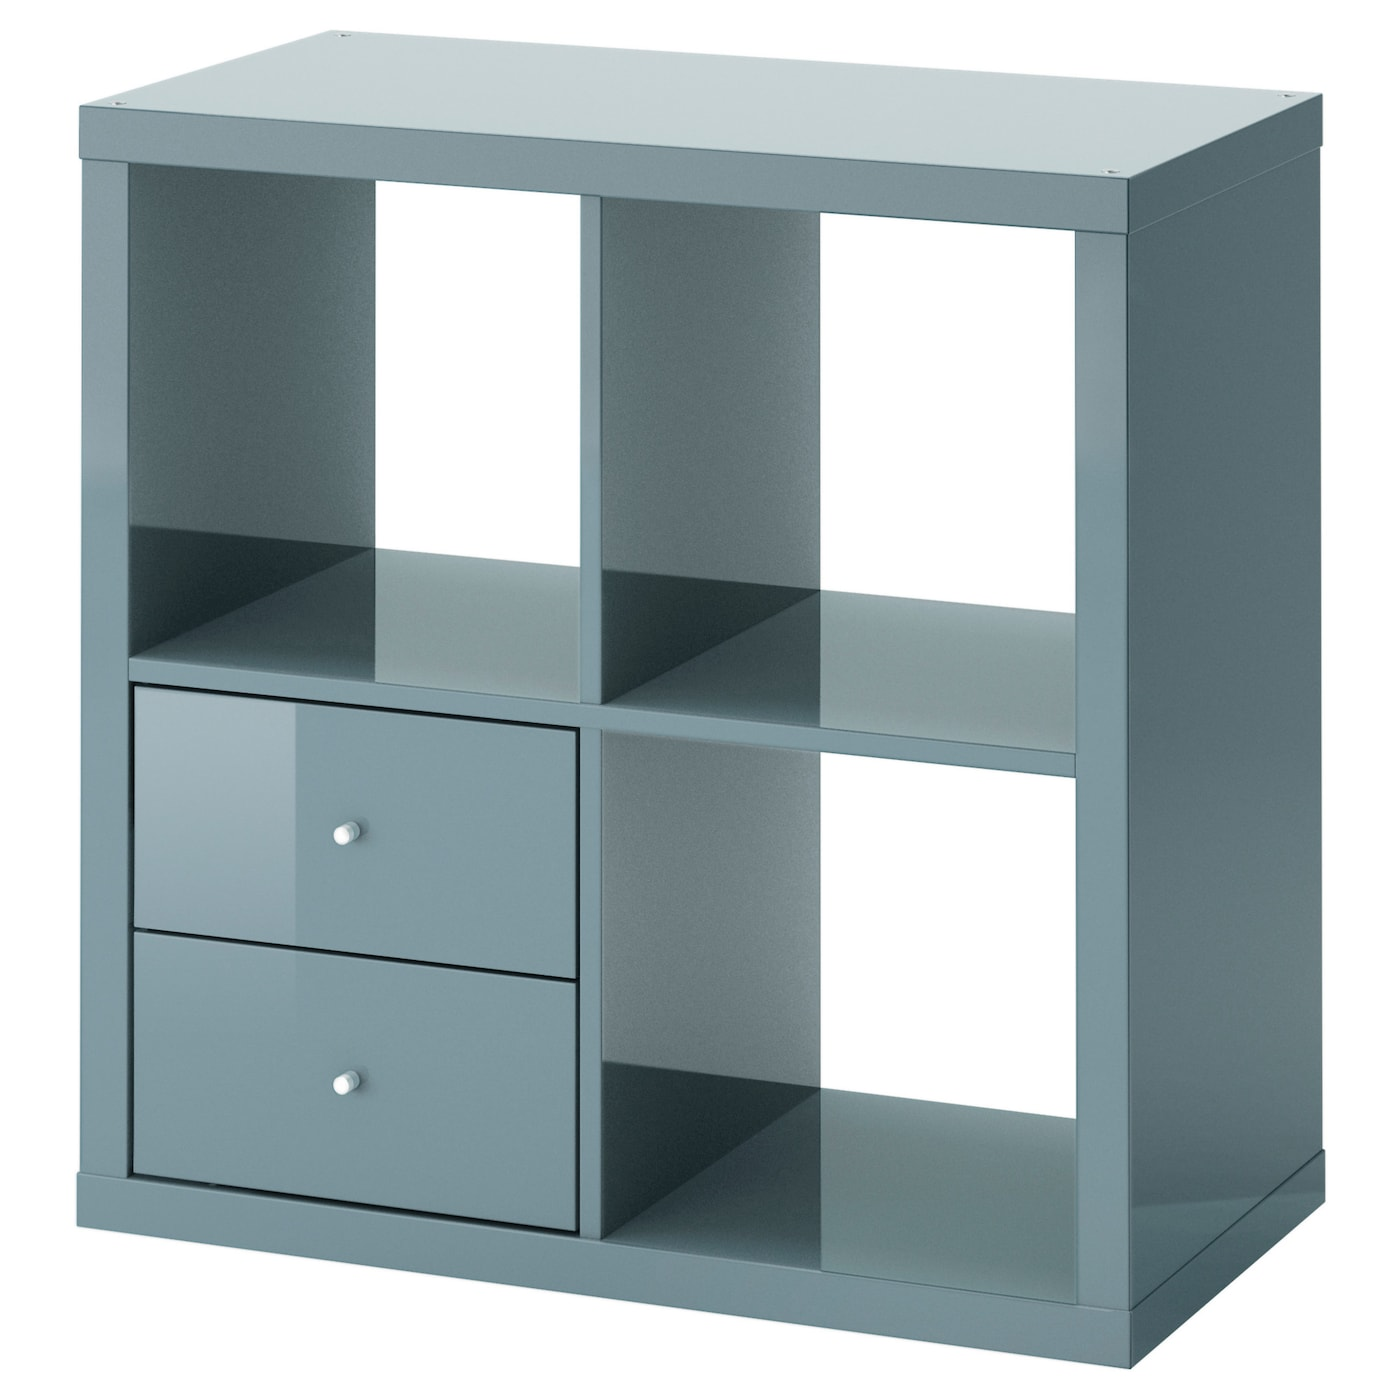 Kallax shelving unit with drawers high gloss grey - Etagere jouet bac rangement ...